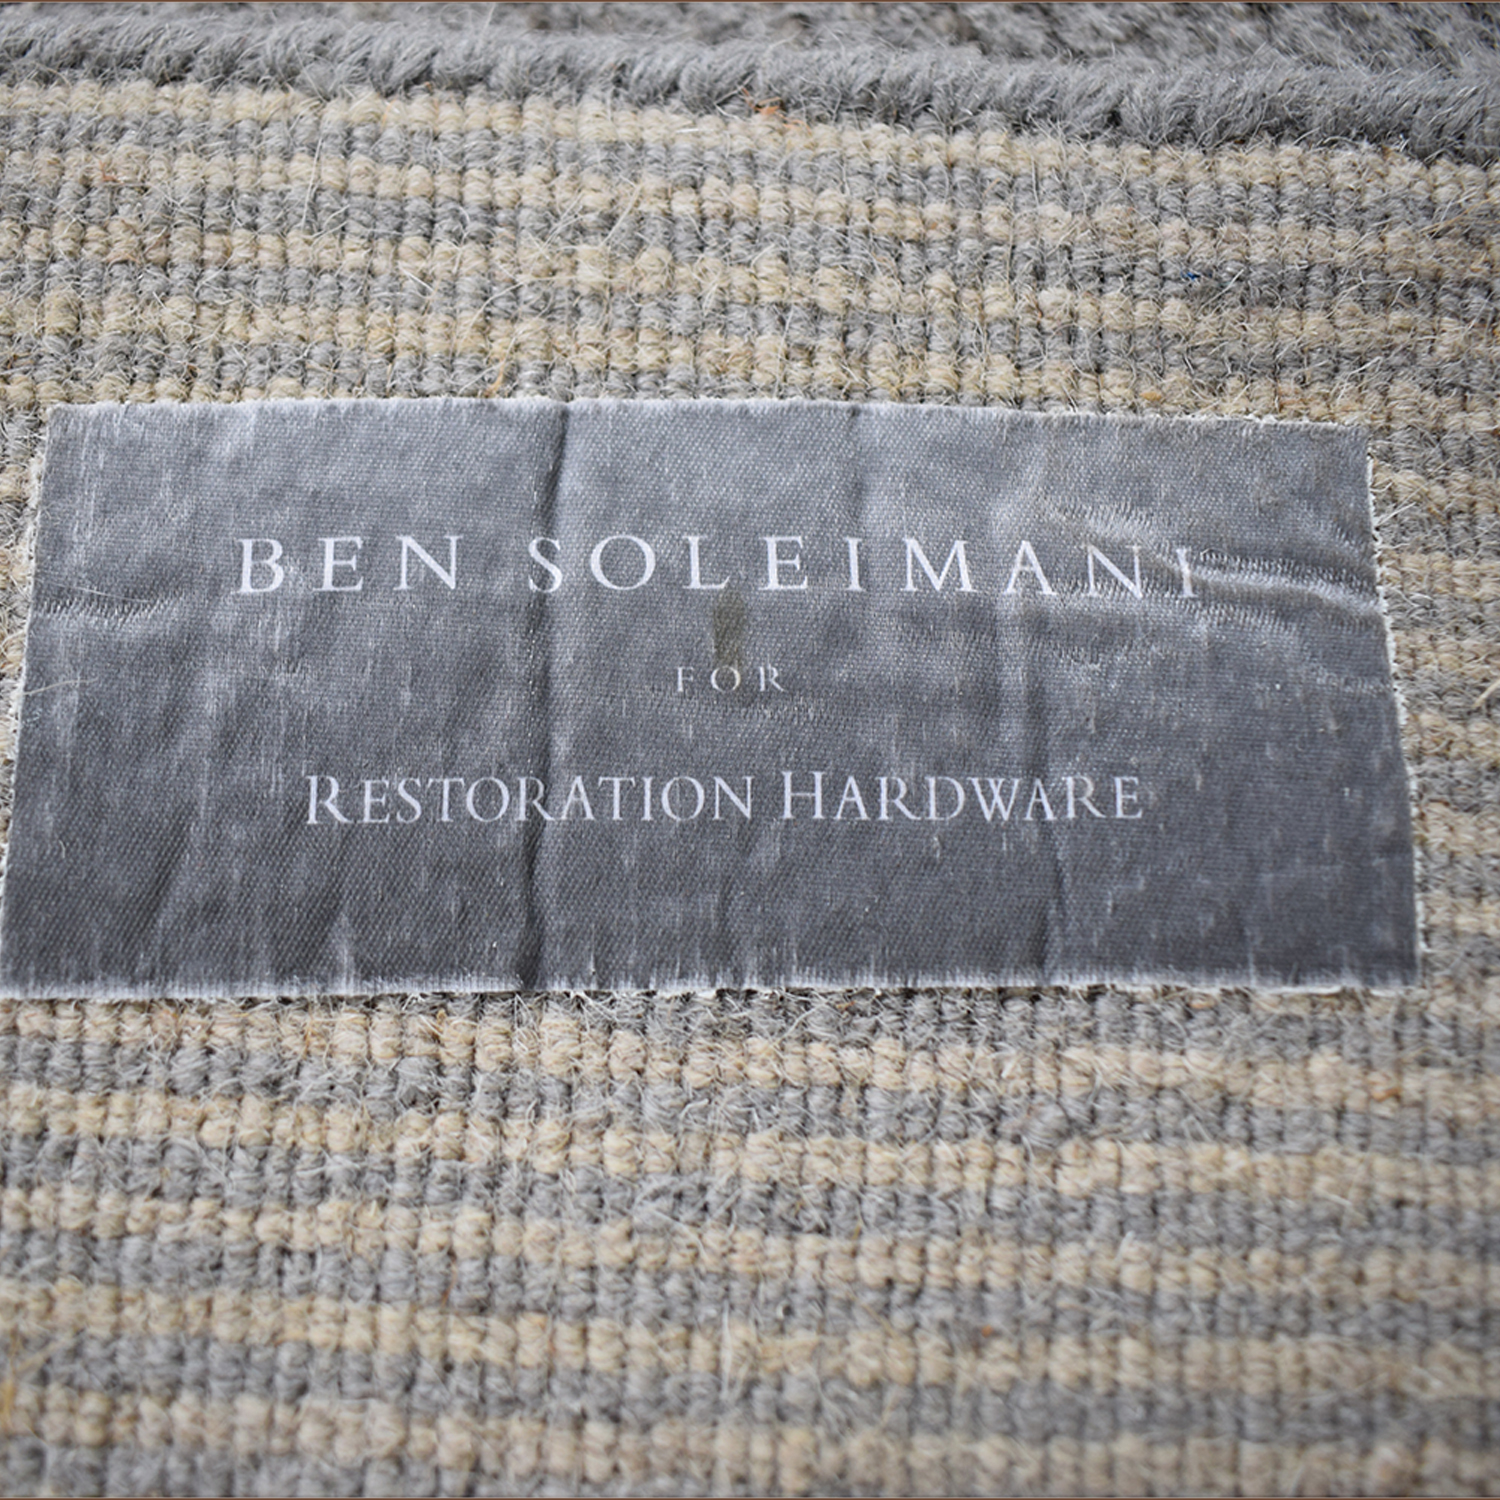 Ben Soleimani for Restoration Hardware Rug / Rugs